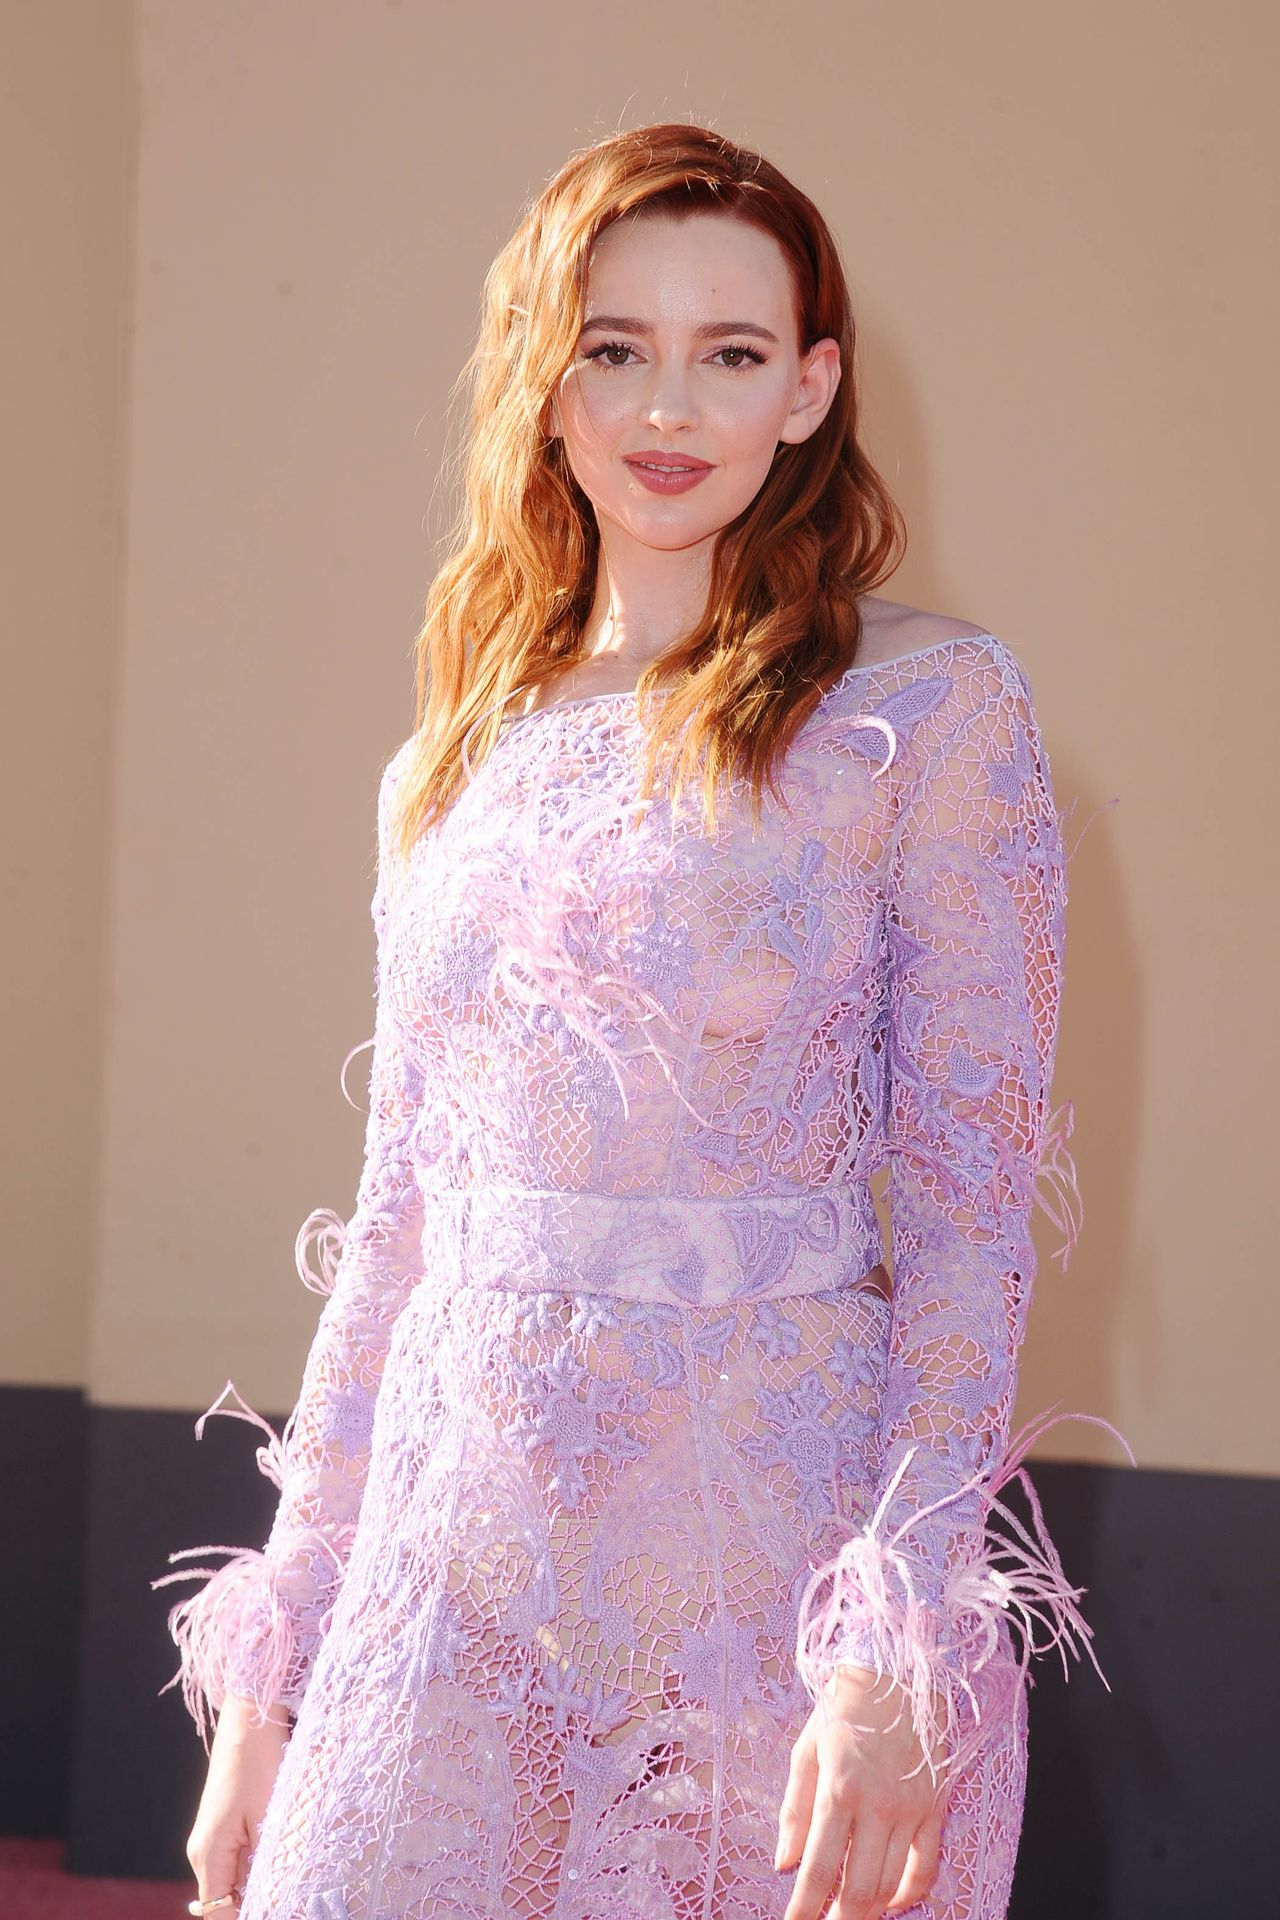 """Natasha Bassett - See-Through (No Bra) """"Once Upon a Time in Hollywood"""" Premiere in L.A. (07/22/19)"""